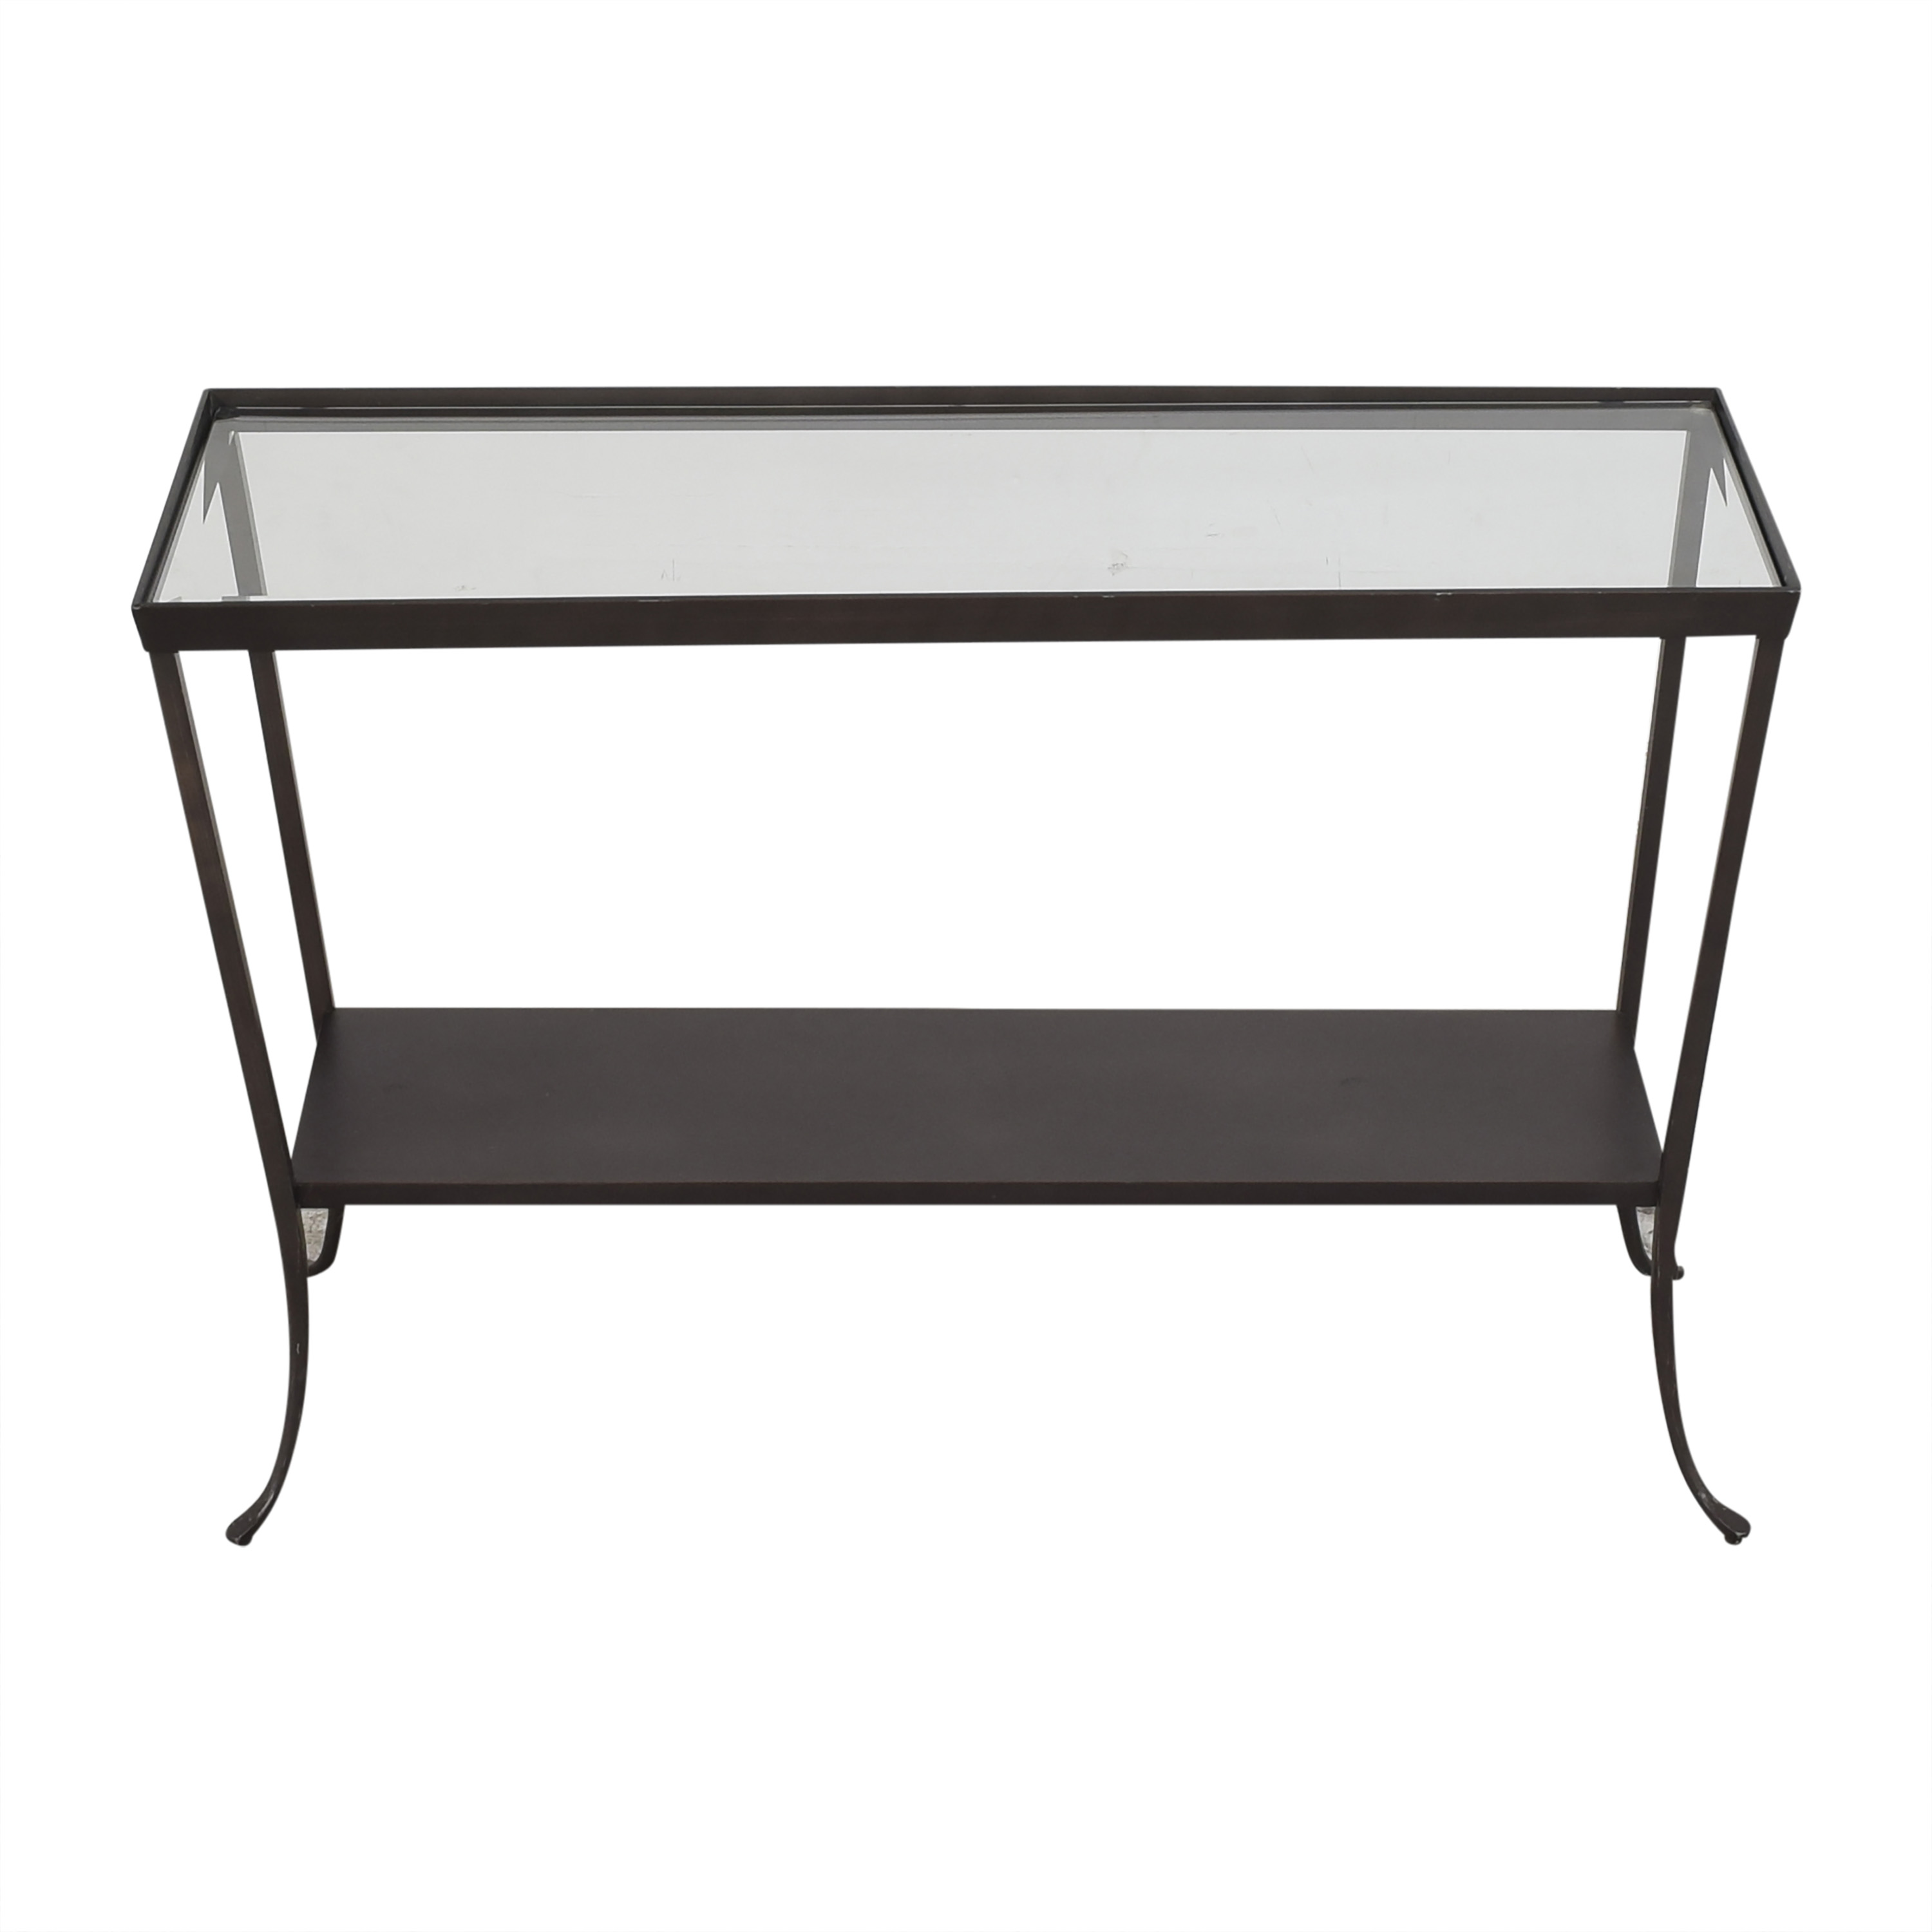 Crate & Barrel Crate & Barrel Console Table with Translucent Surface